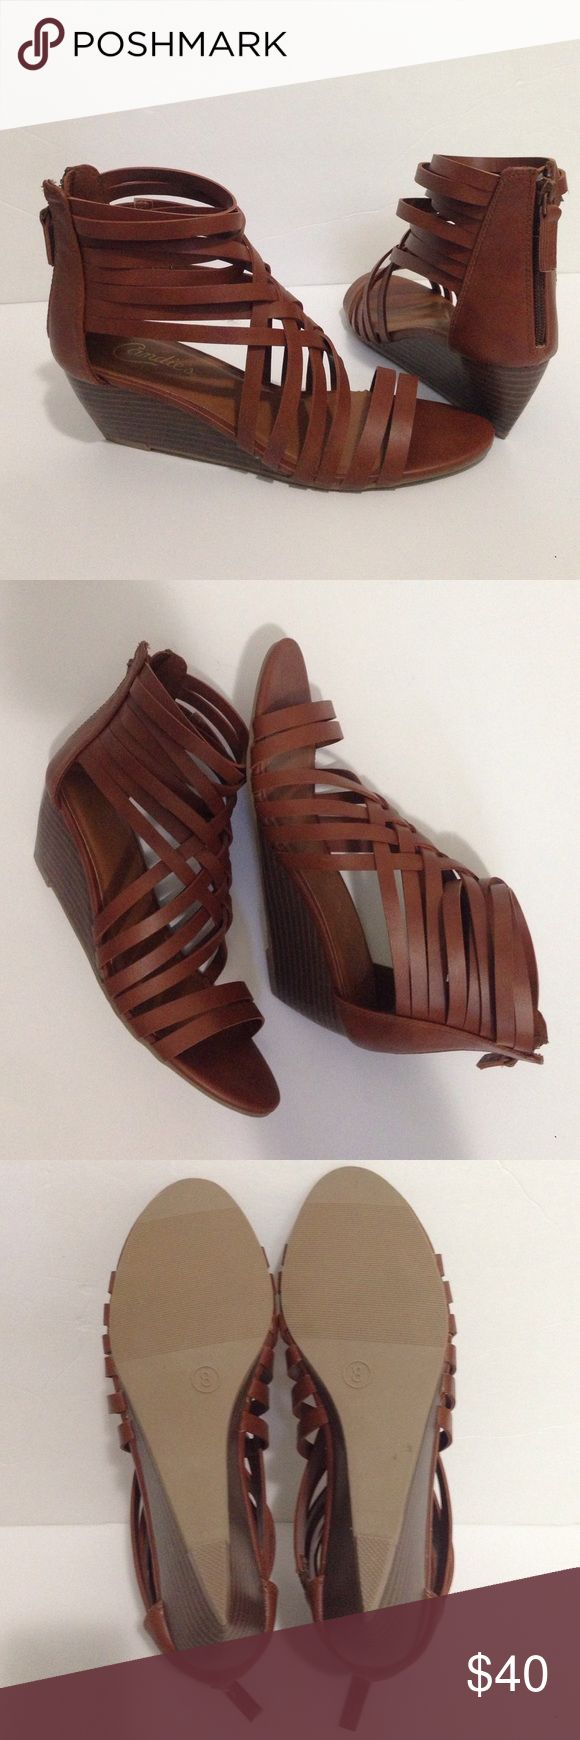 NEW IN BOX Candies Brown Wedge Sandals Candies Brown Wedge Sandals NWT Size 8. Great with dresses or jeans! Very versatile and comfortable shoe! New with box! Candie's Shoes